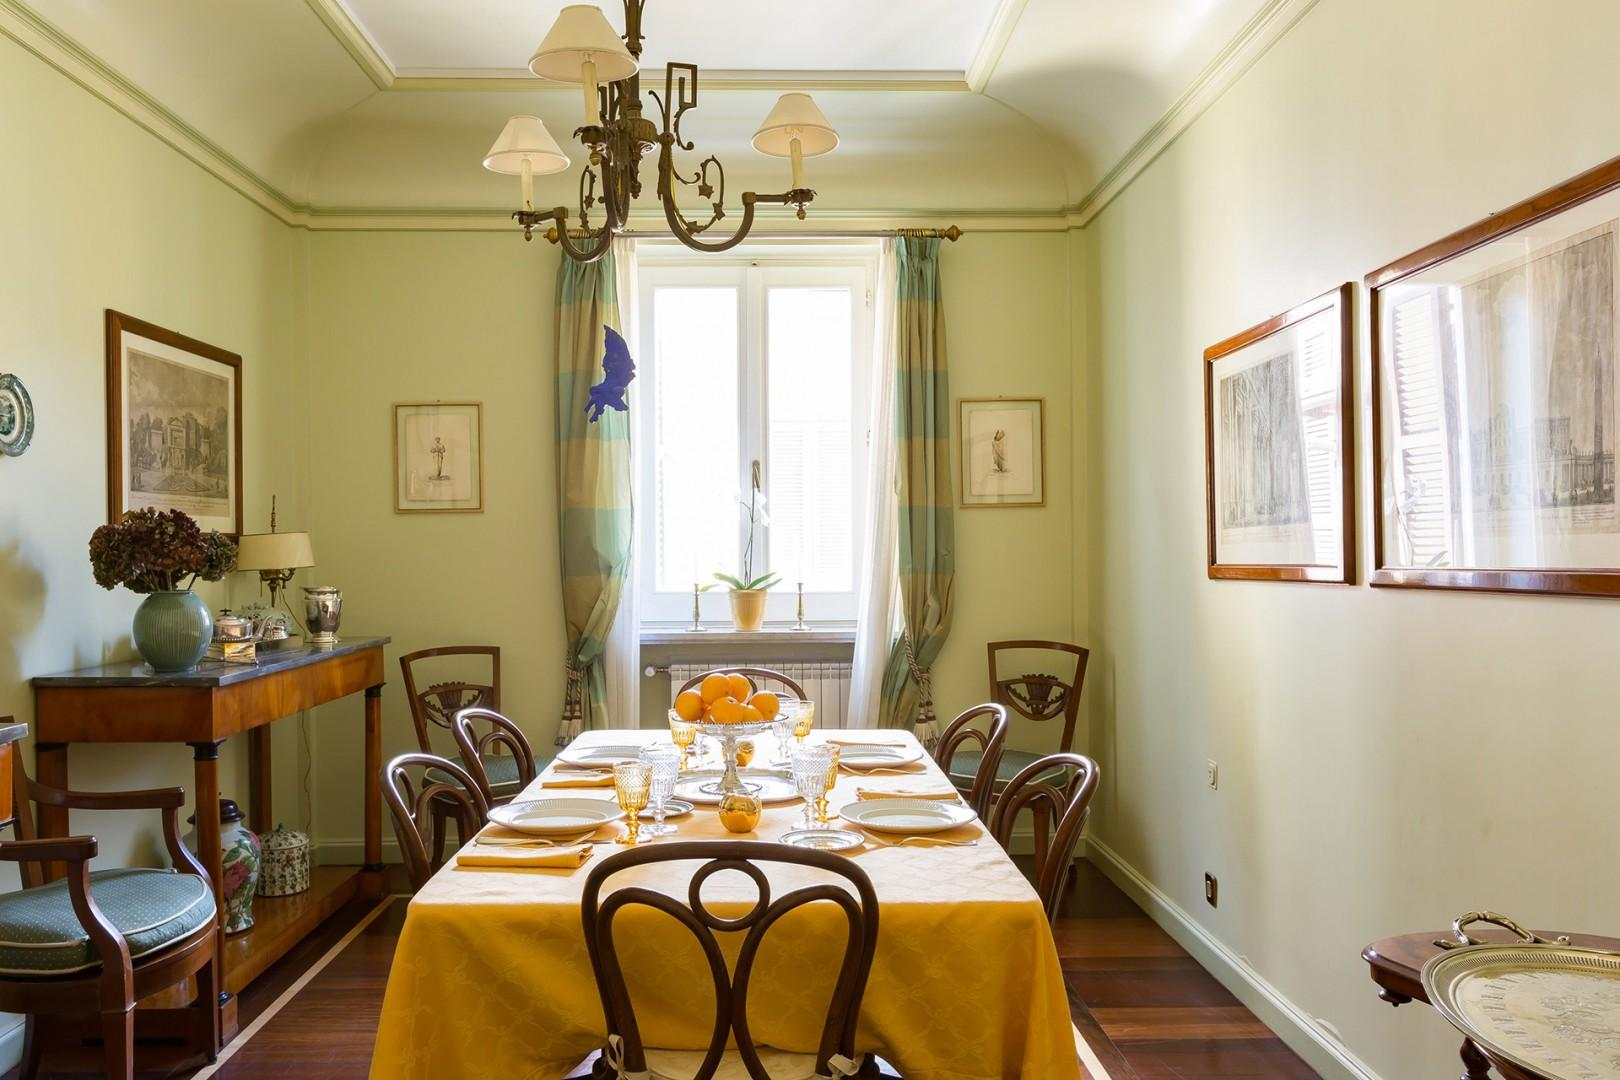 The formal dining room is beautifully furnished with antique sideboards and precious porcelain.